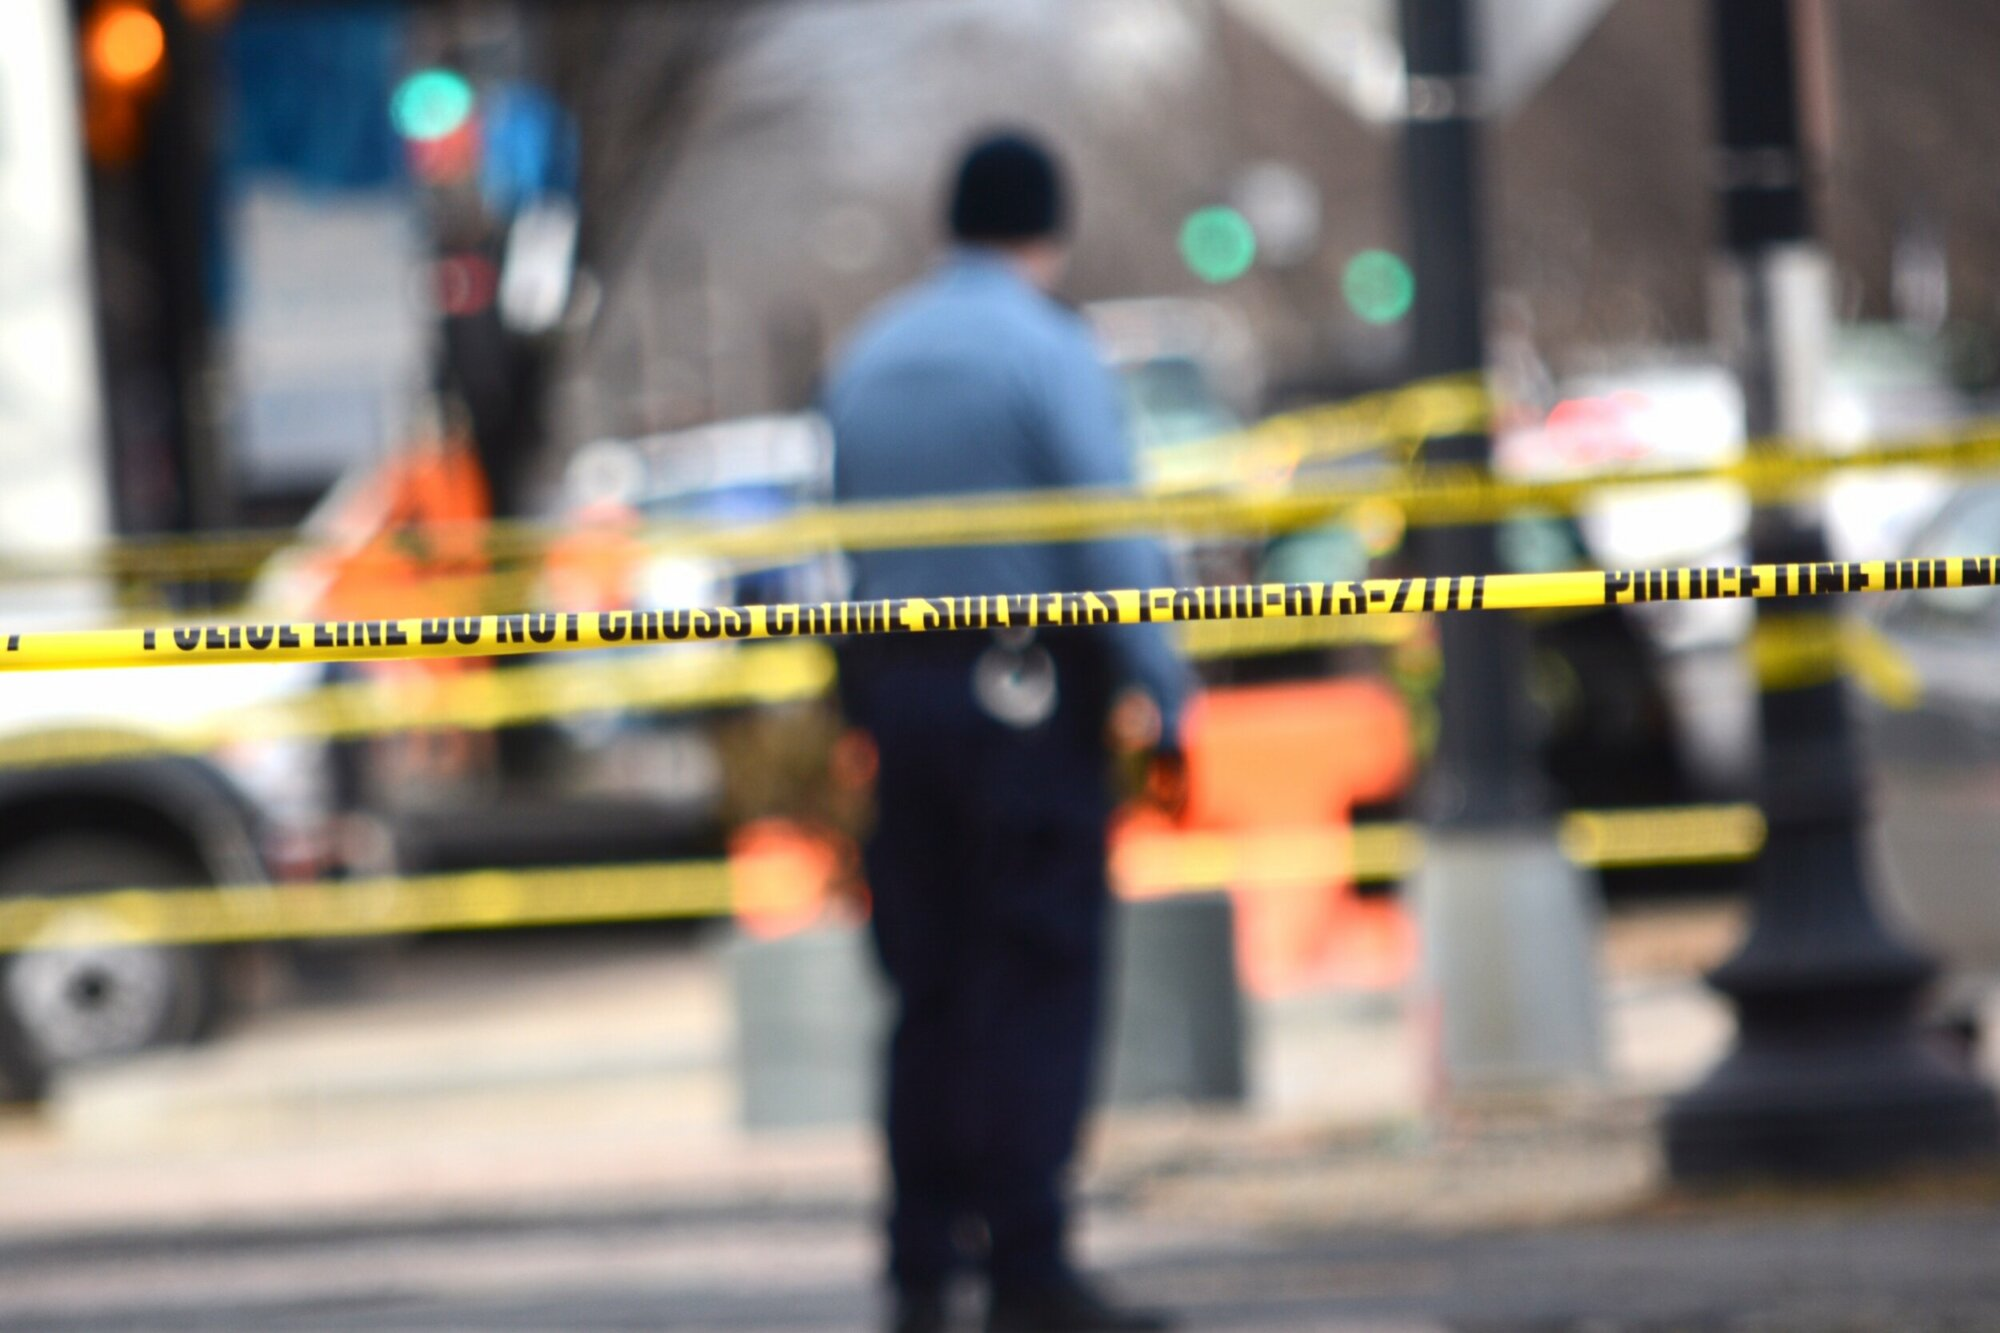 Police arrest DC man linked to deadly 2006 shooting